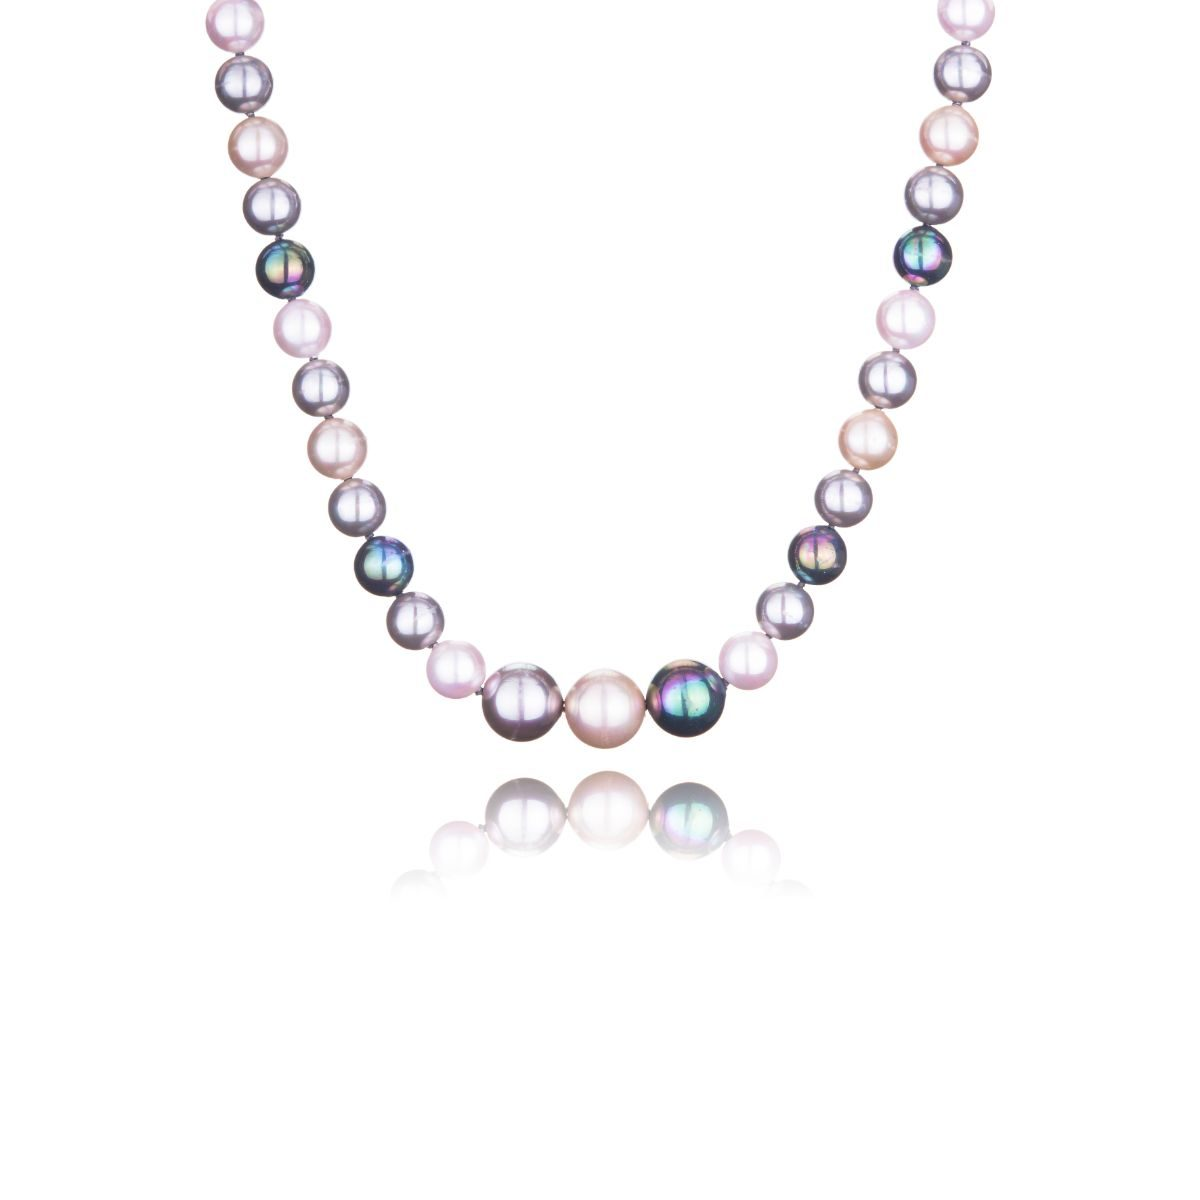 Sardinia short necklace of majestic pearls of three different shades of silver in a single strap